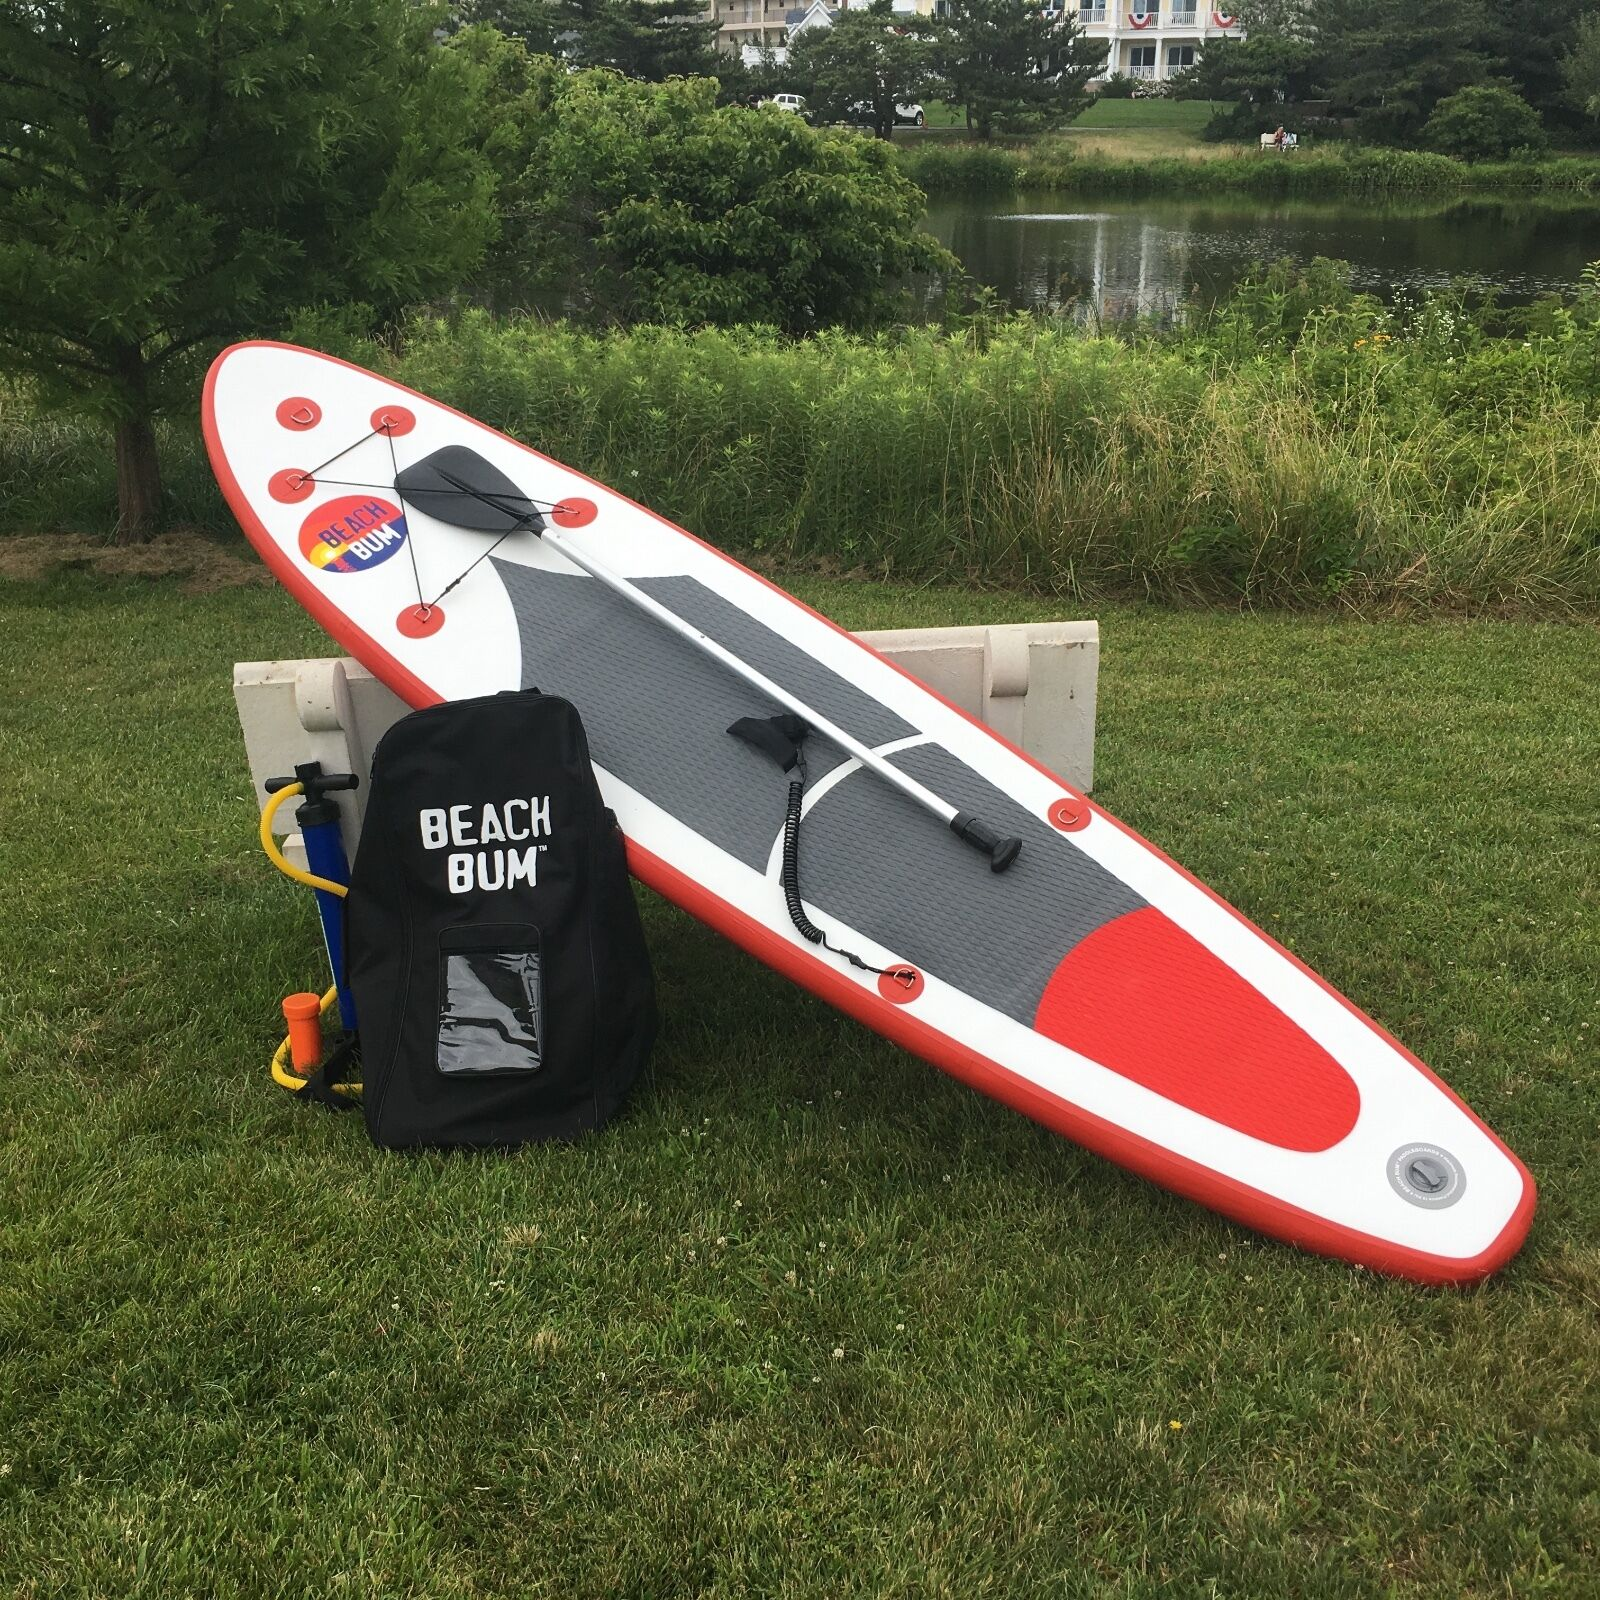 Beach Bum SPK2 - 10' 10'' Inflatable Stand Up Paddle Board w/ Paddle and leash